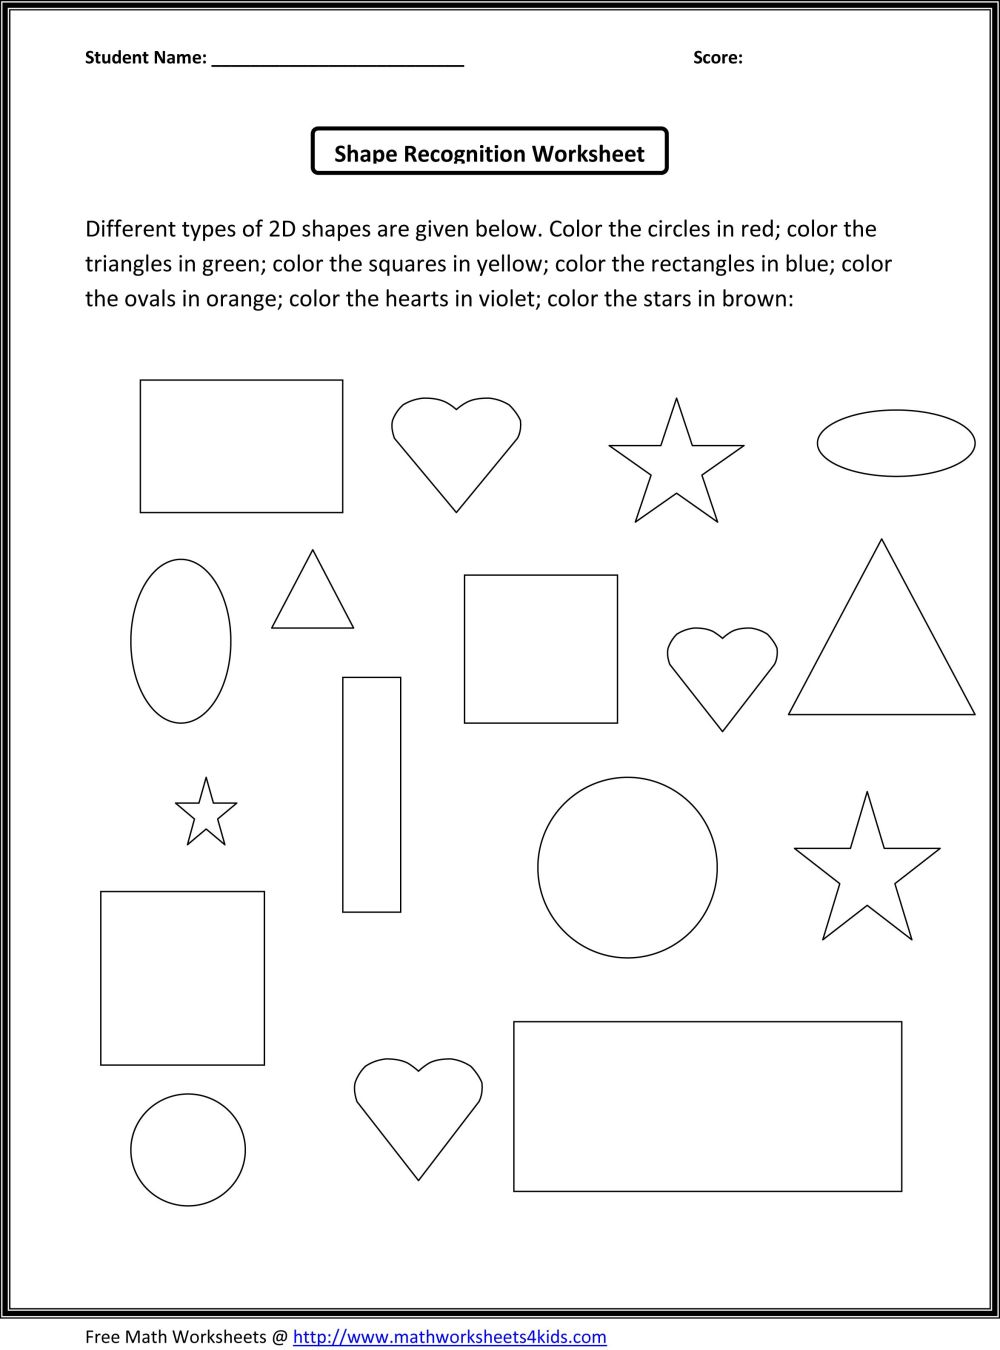 medium resolution of 18 Best Rectangles Triangles Worksheets images on Best Worksheets Collection